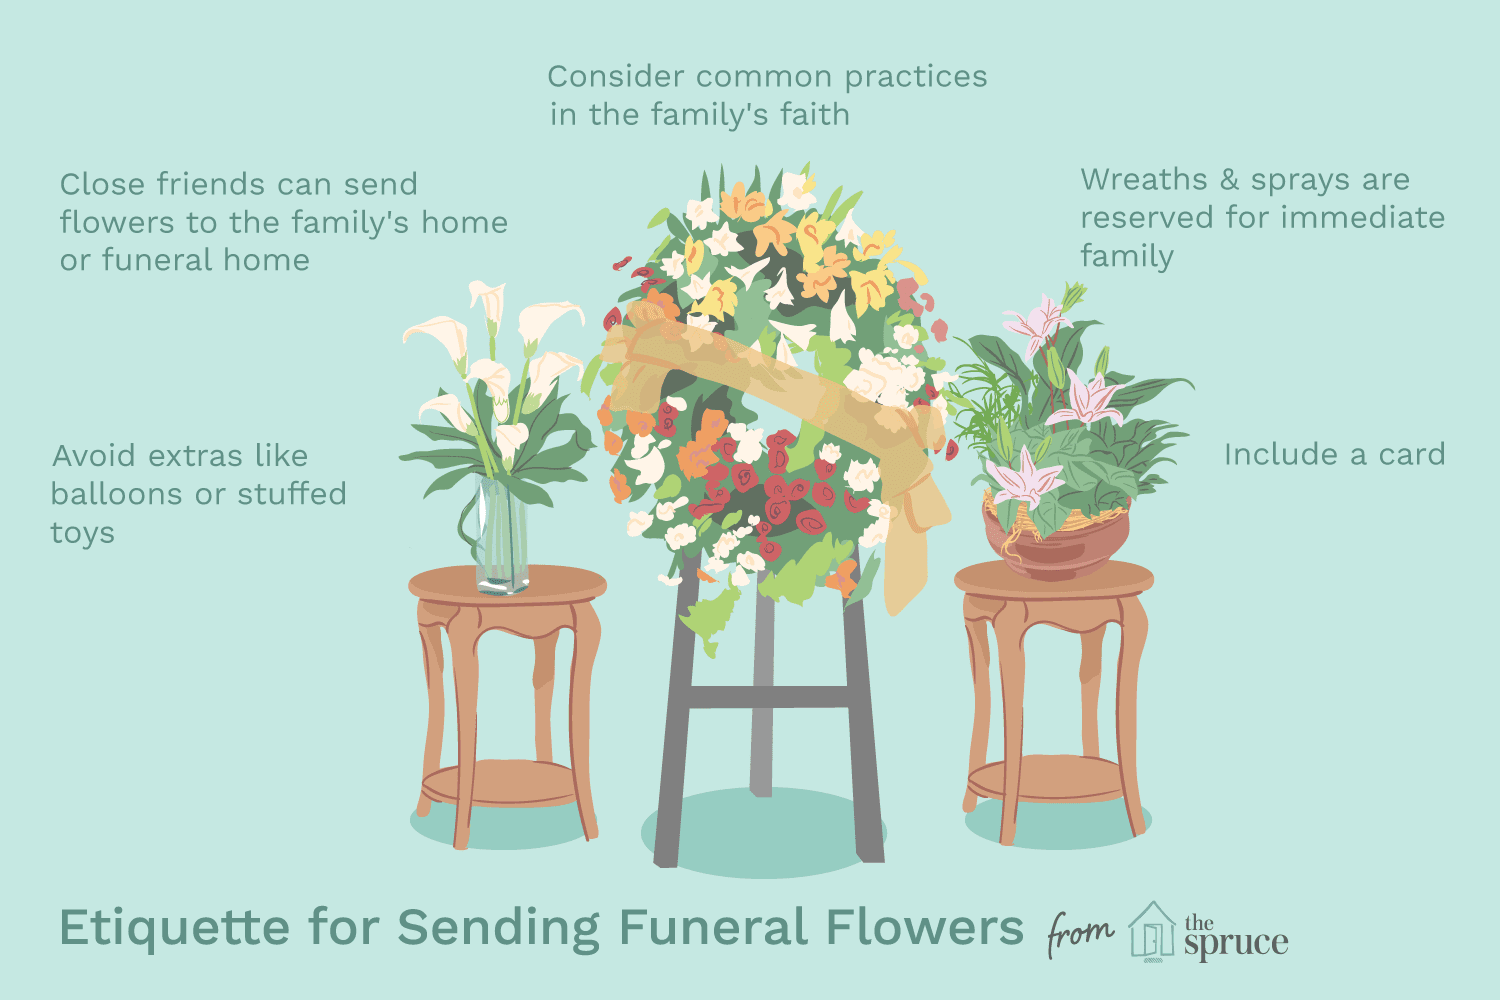 illustration of etiquette for sending funeral flowers